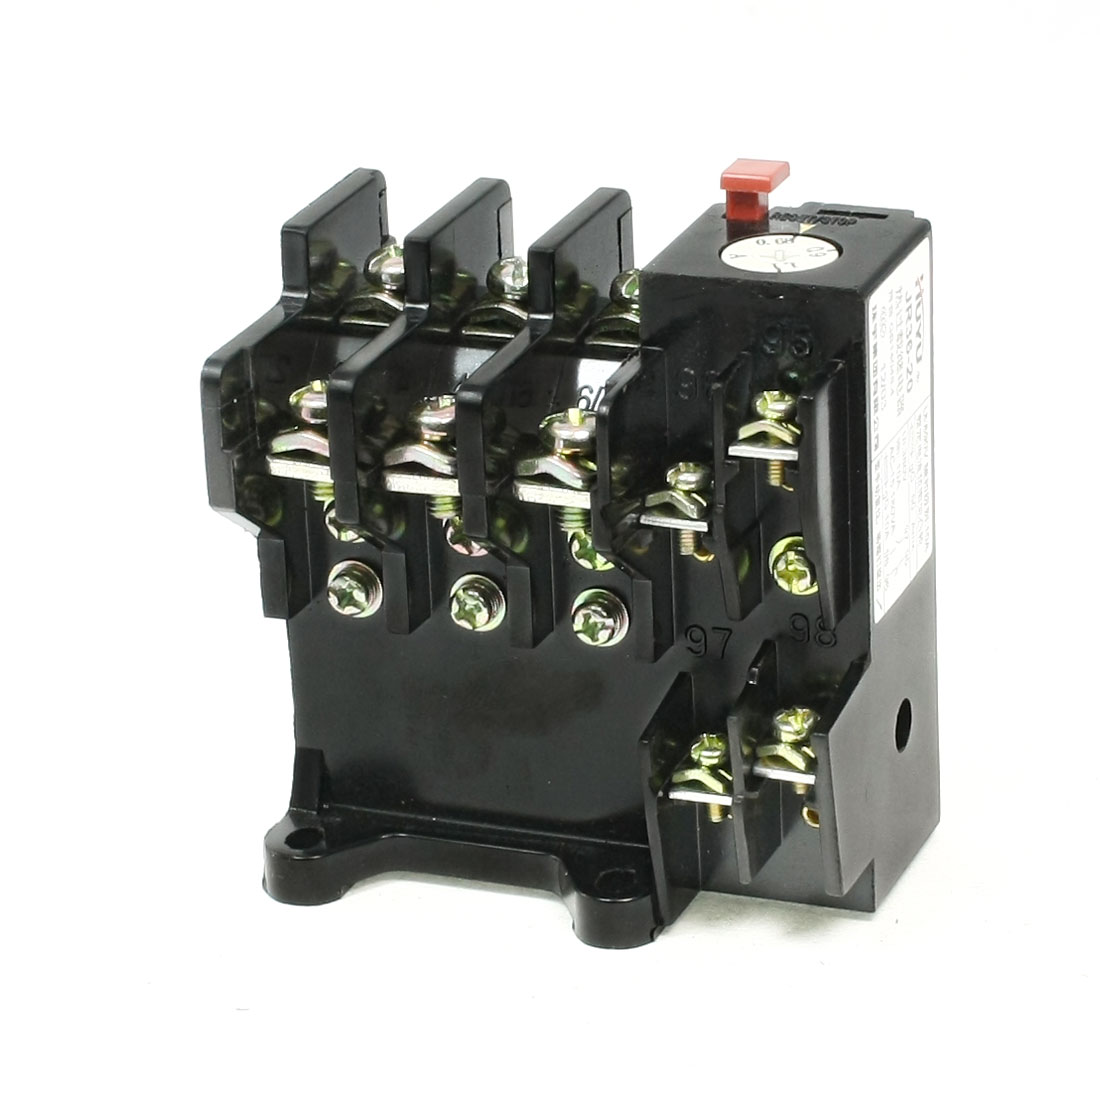 JR36-20 3 Phase 1NO 1NC 0.68-1.1A Range Electric Thermal Overload Relay